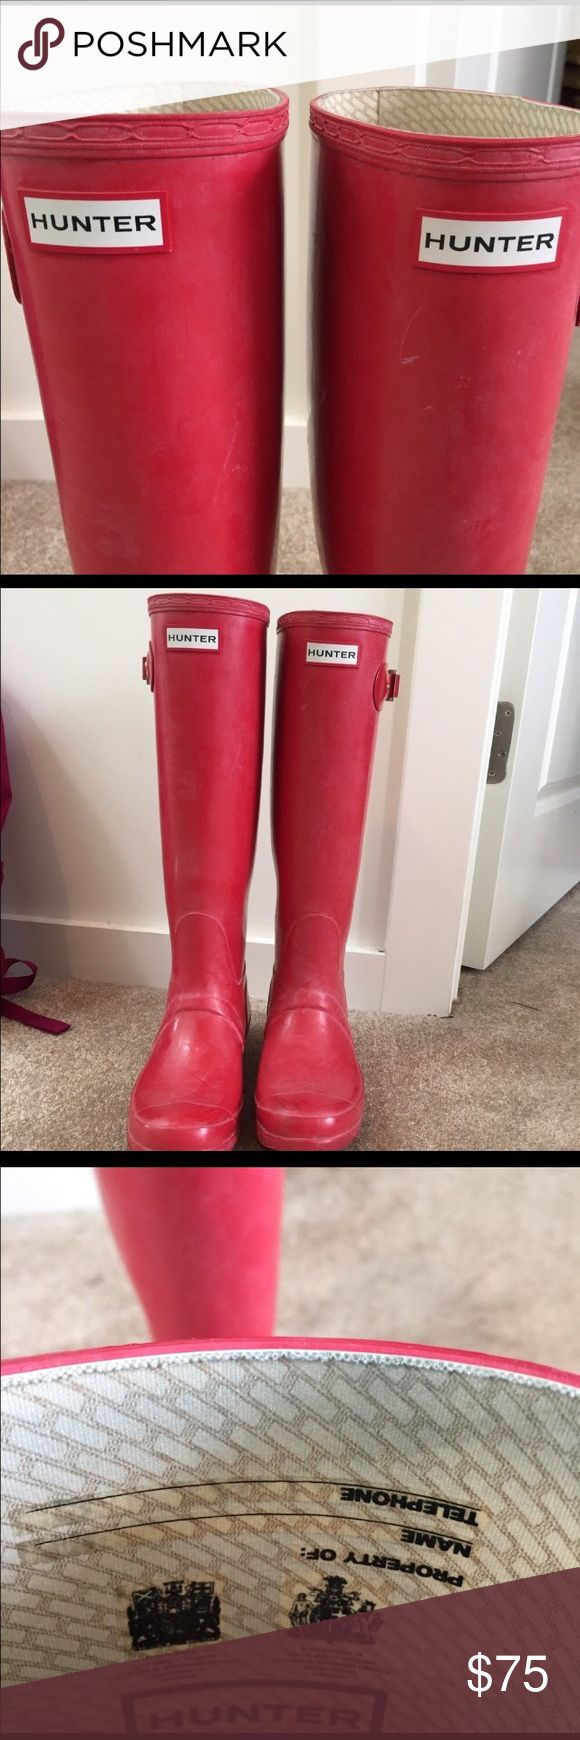 Hunter Red Boots Tall Red hunter boots size 8. Great condition. Only wear is the natural whitening these rain boots have after wearing but can easily be cleaned. Actually I'd love to trade these with short boots! Hunter Shoes Winter & Rain Boots